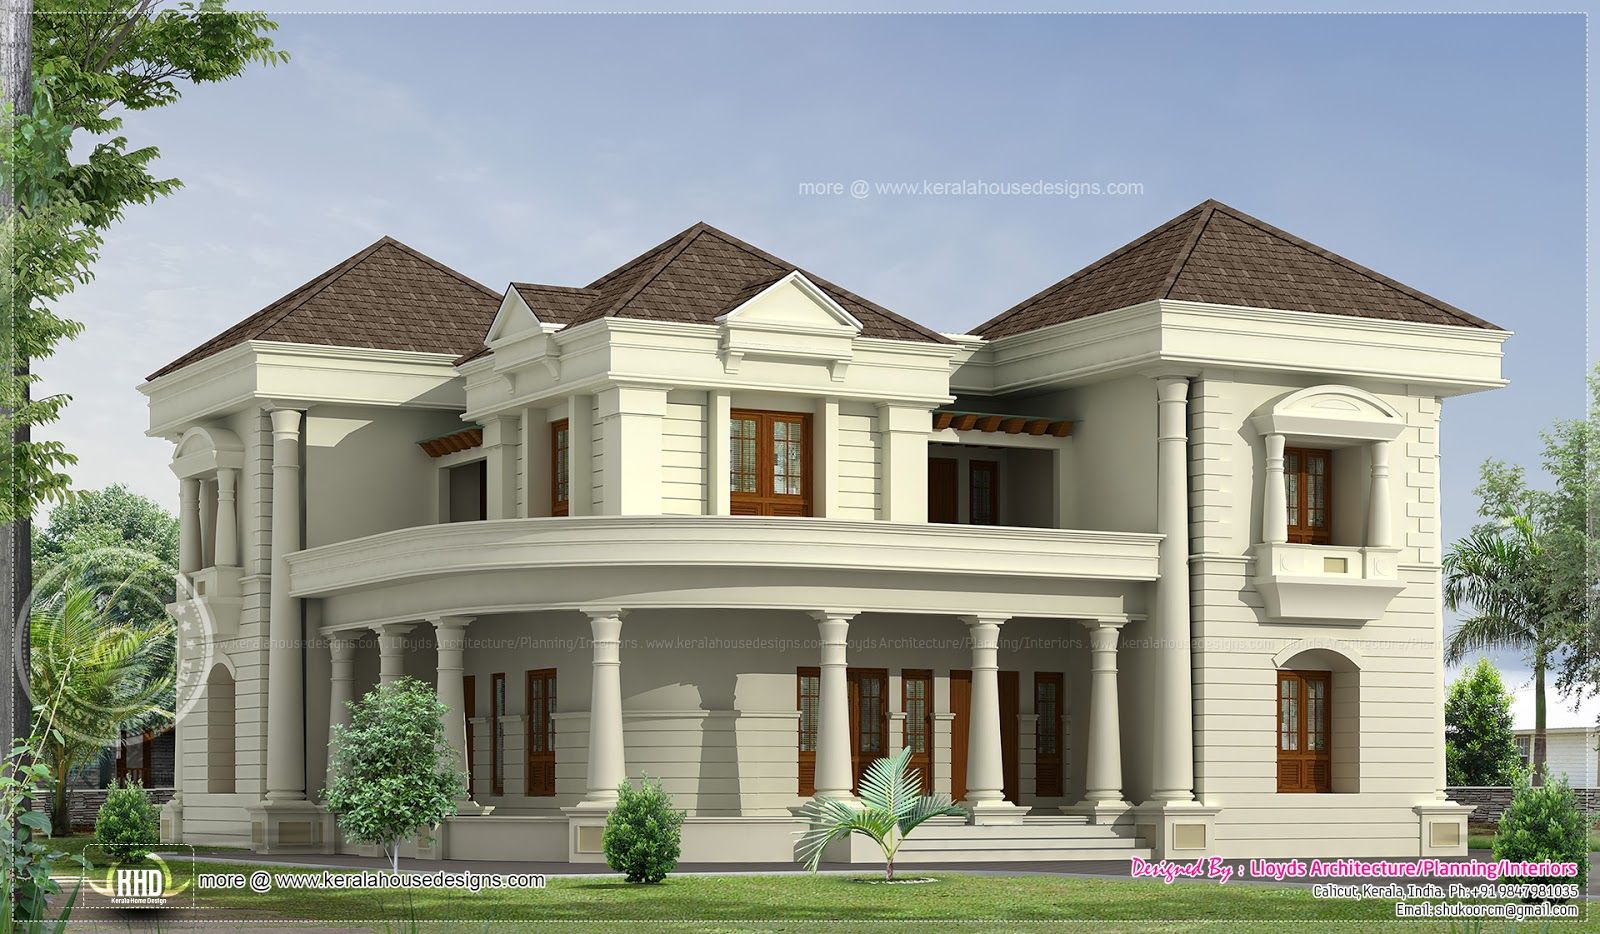 Modern bungalows bedroom luxurious bungalow floor plan for Www bungalow design